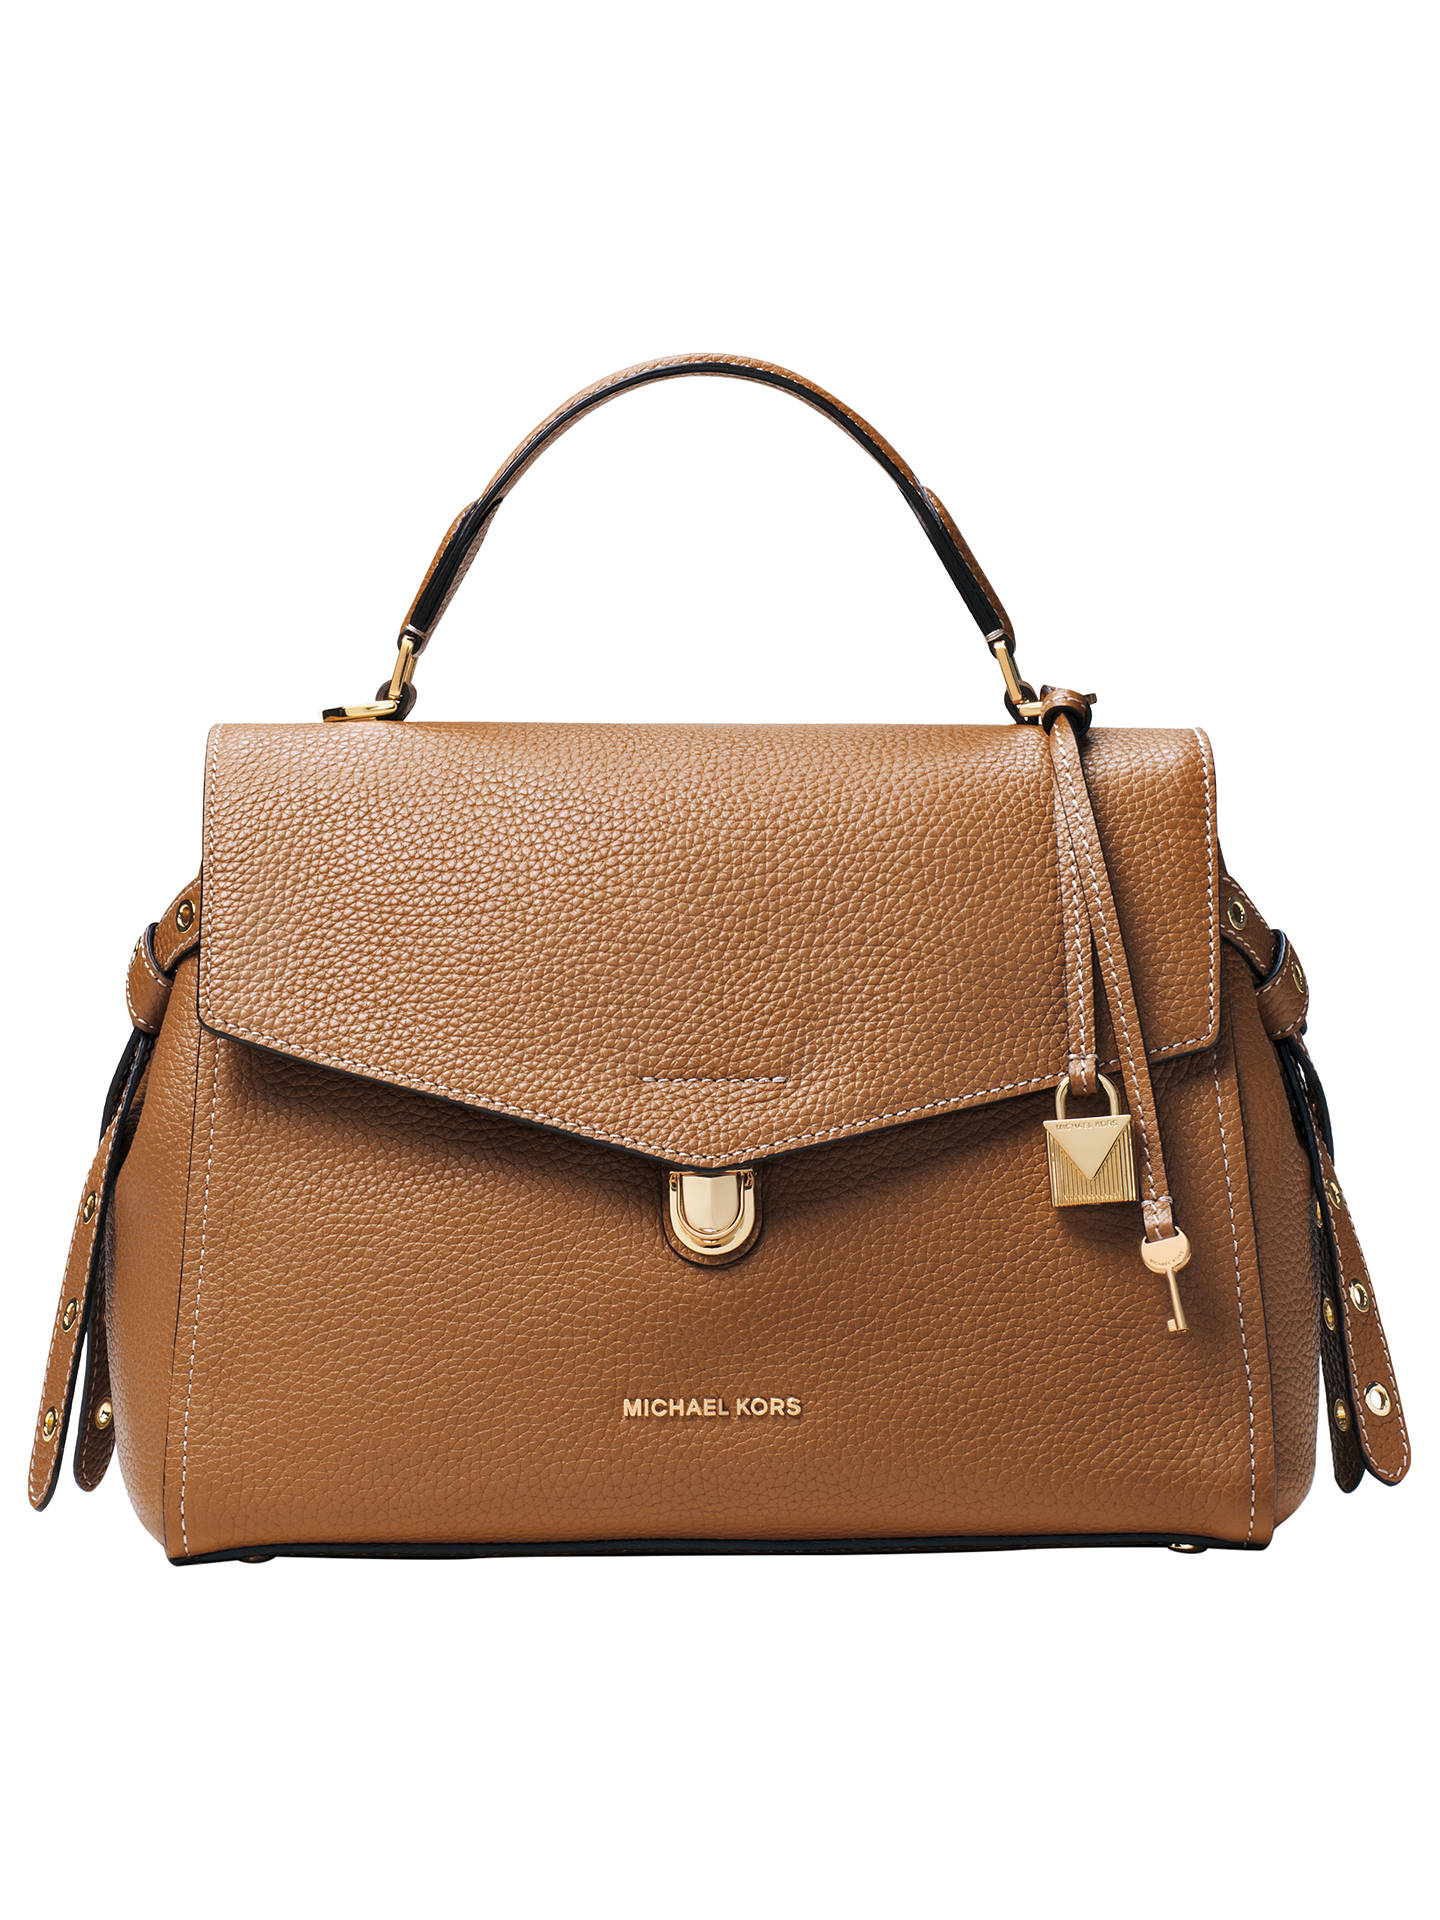 5f5ee92d254e Buy MICHAEL Michael Kors Bristol Medium Leather Satchel Bag, Acorn Online  at johnlewis.com ...